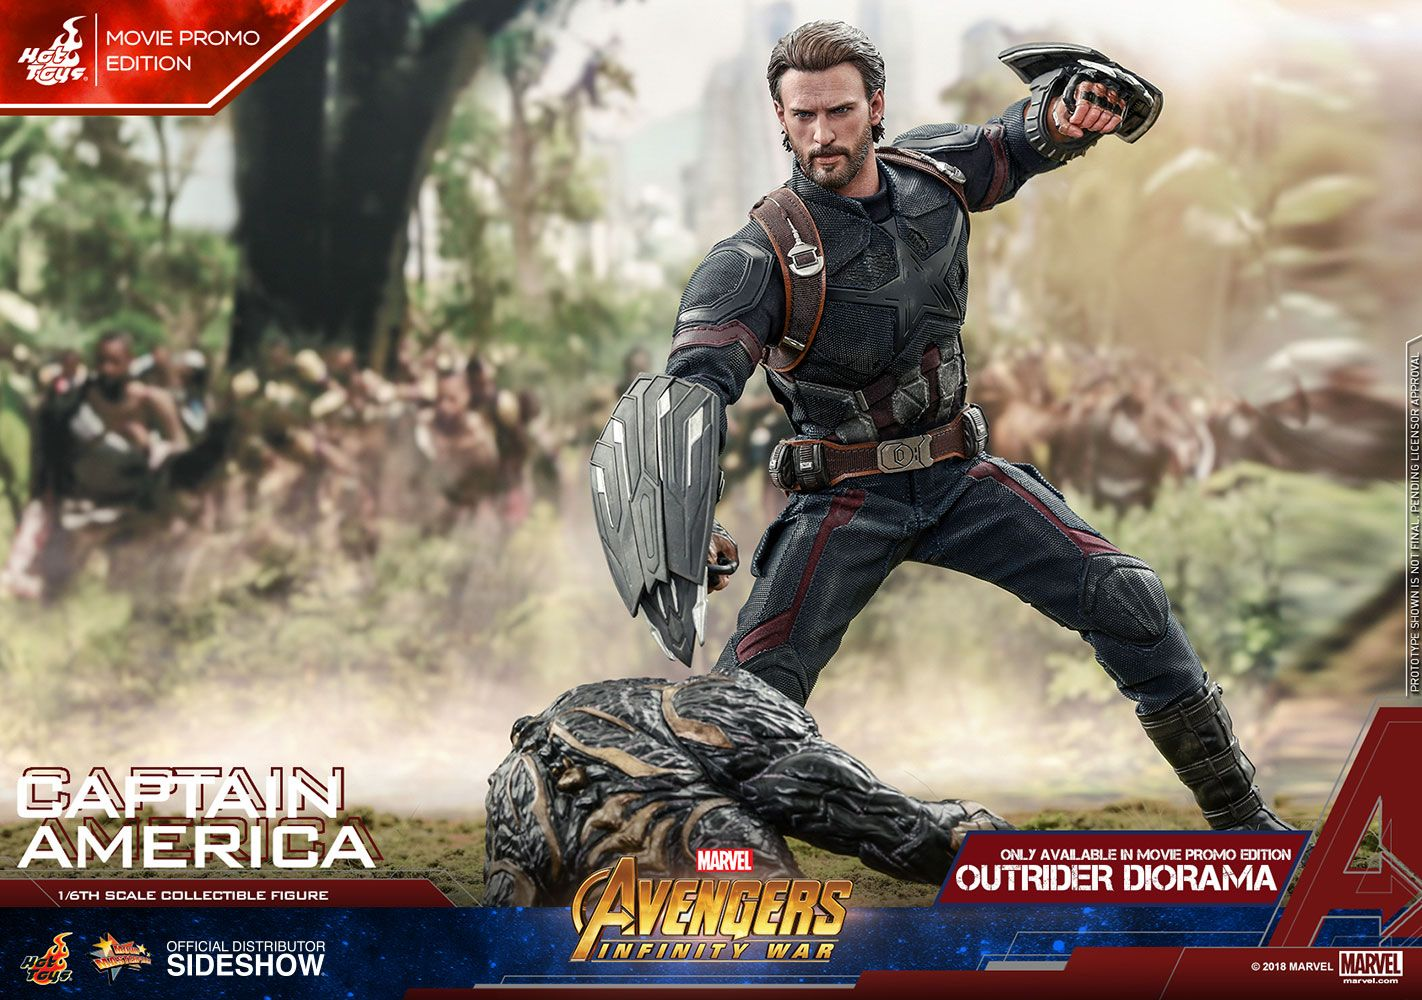 Marvel Captain America Movie Promo Edition Sixth Scale Figure By